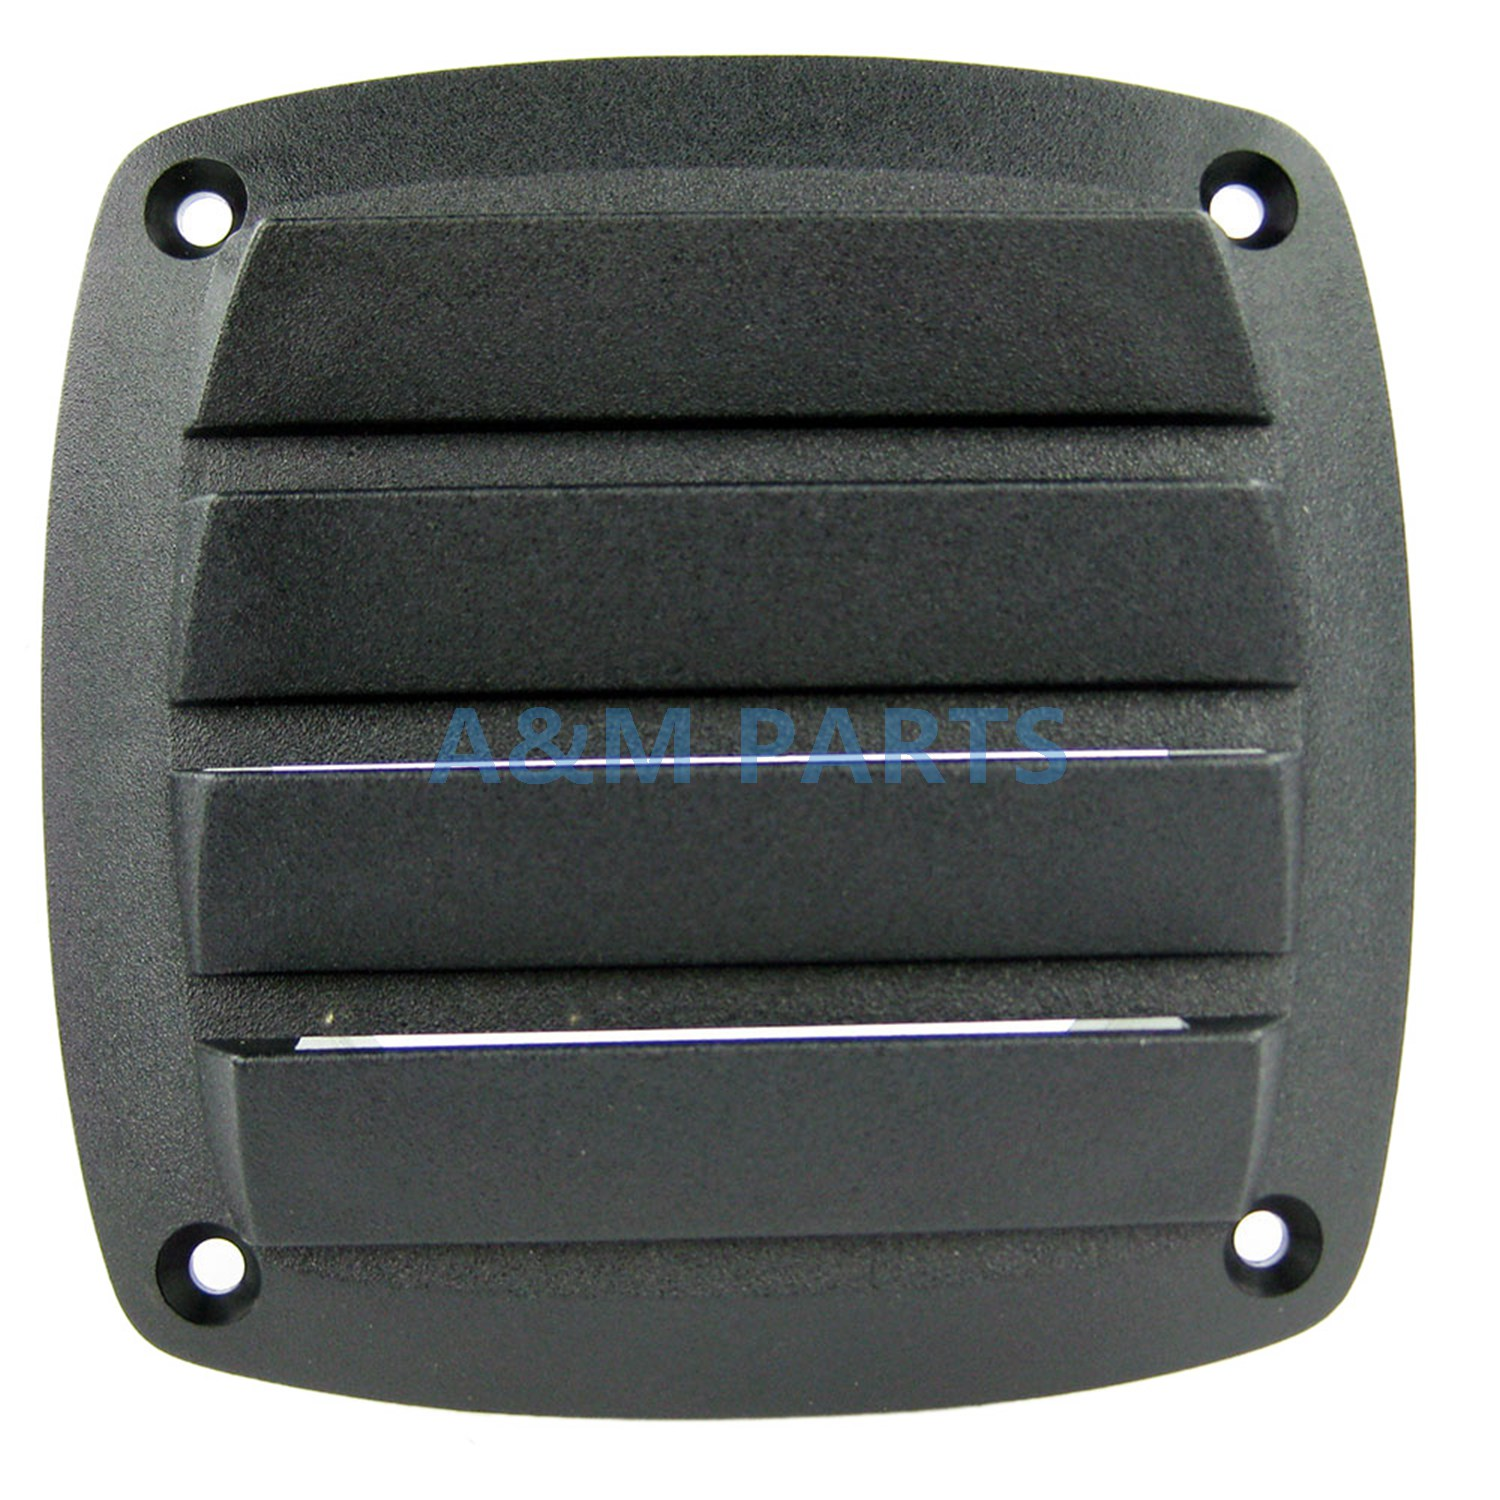 Boat Louvered Vents Round 4 Inch Hose Hull Air Vent Marine Plastic Surface Mount